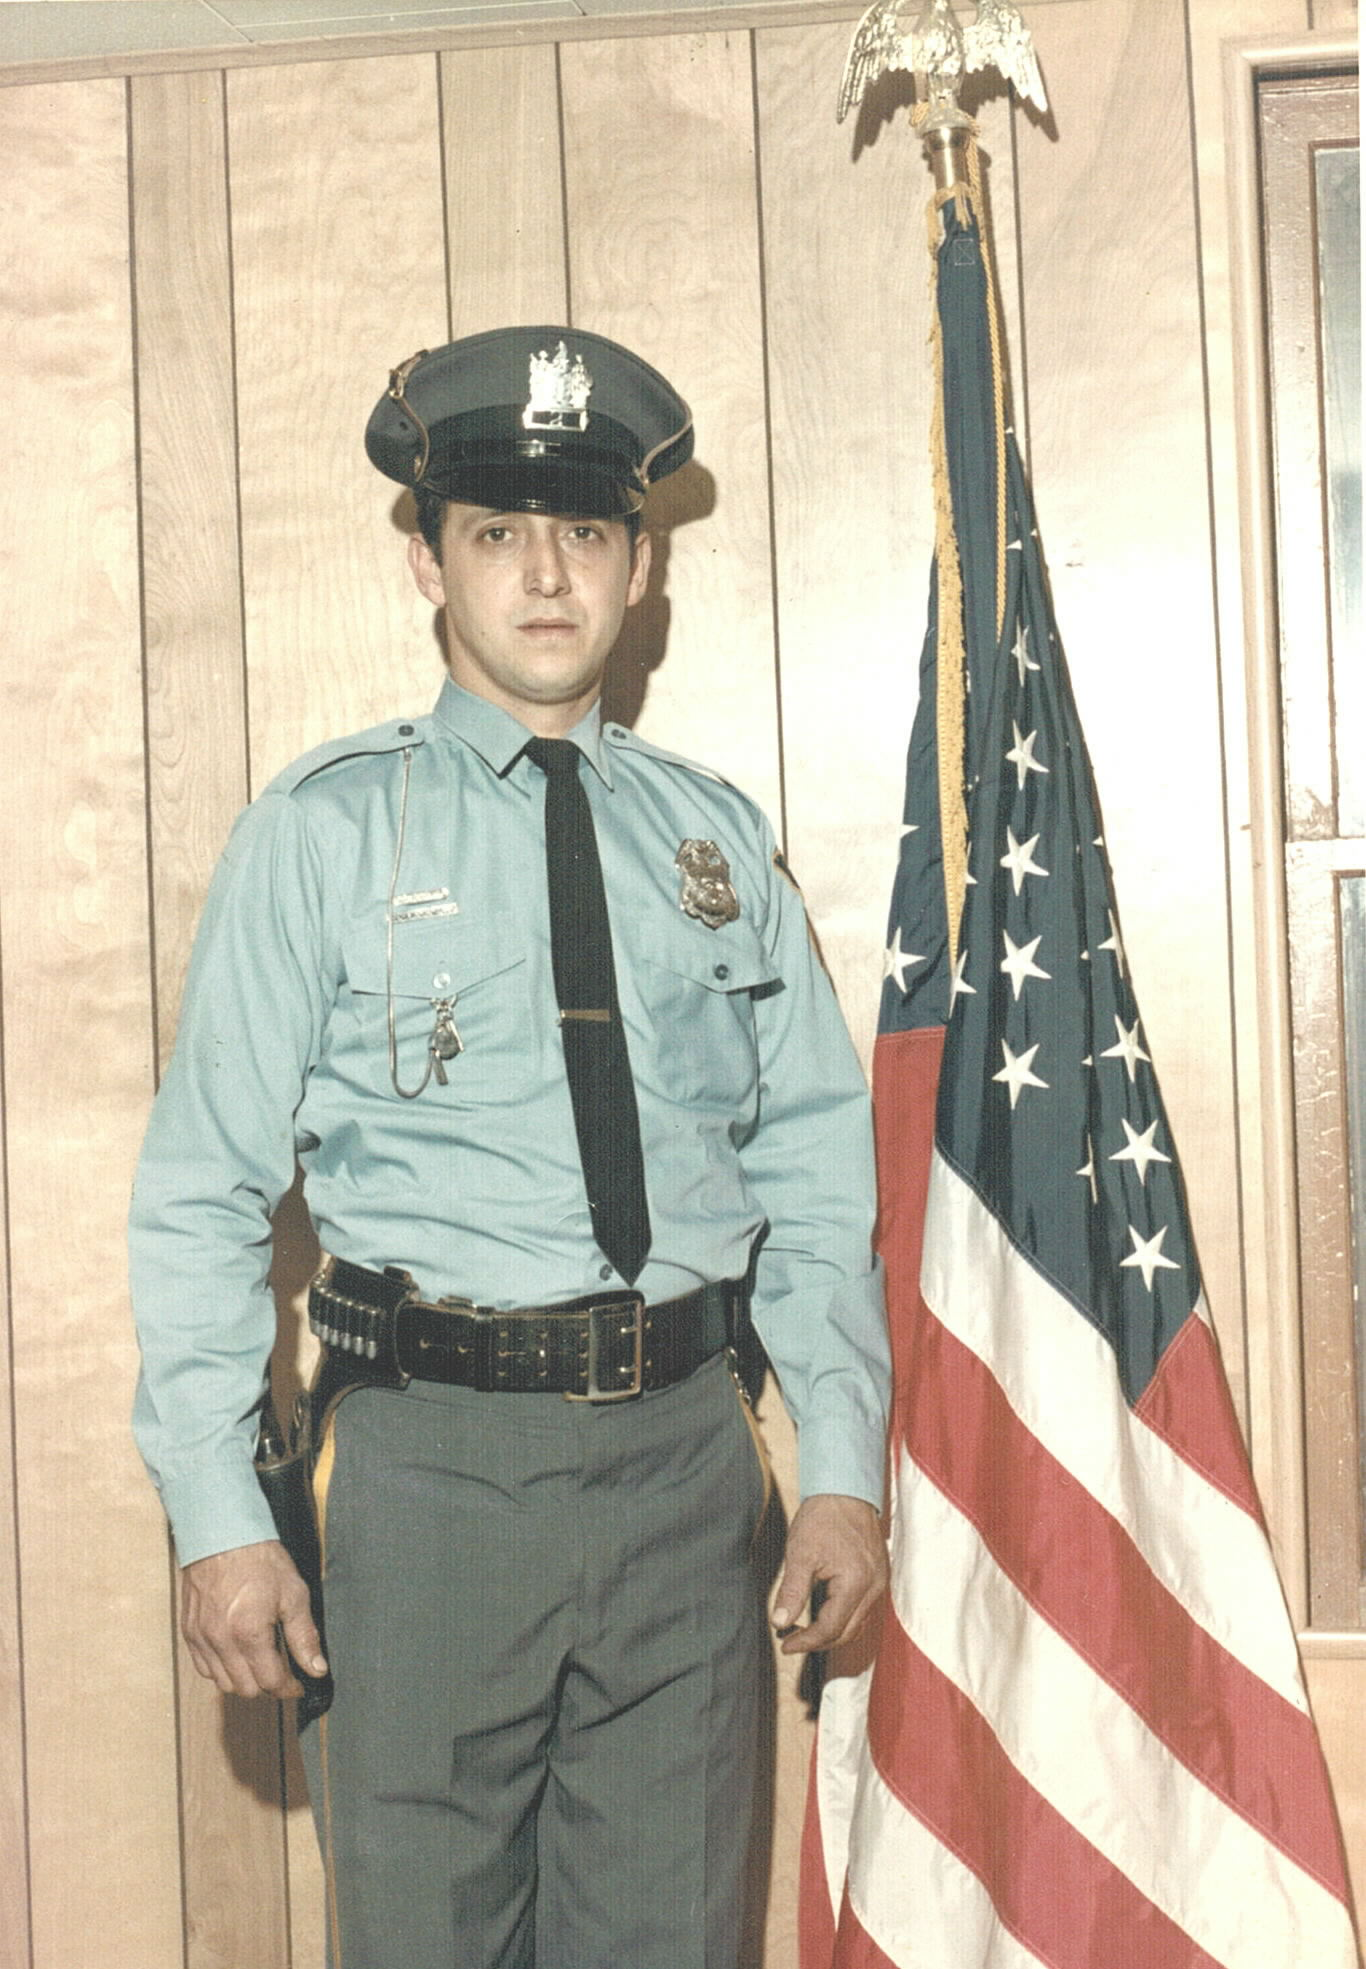 Officer Rick Coraluzzo (photo from the 1960's)